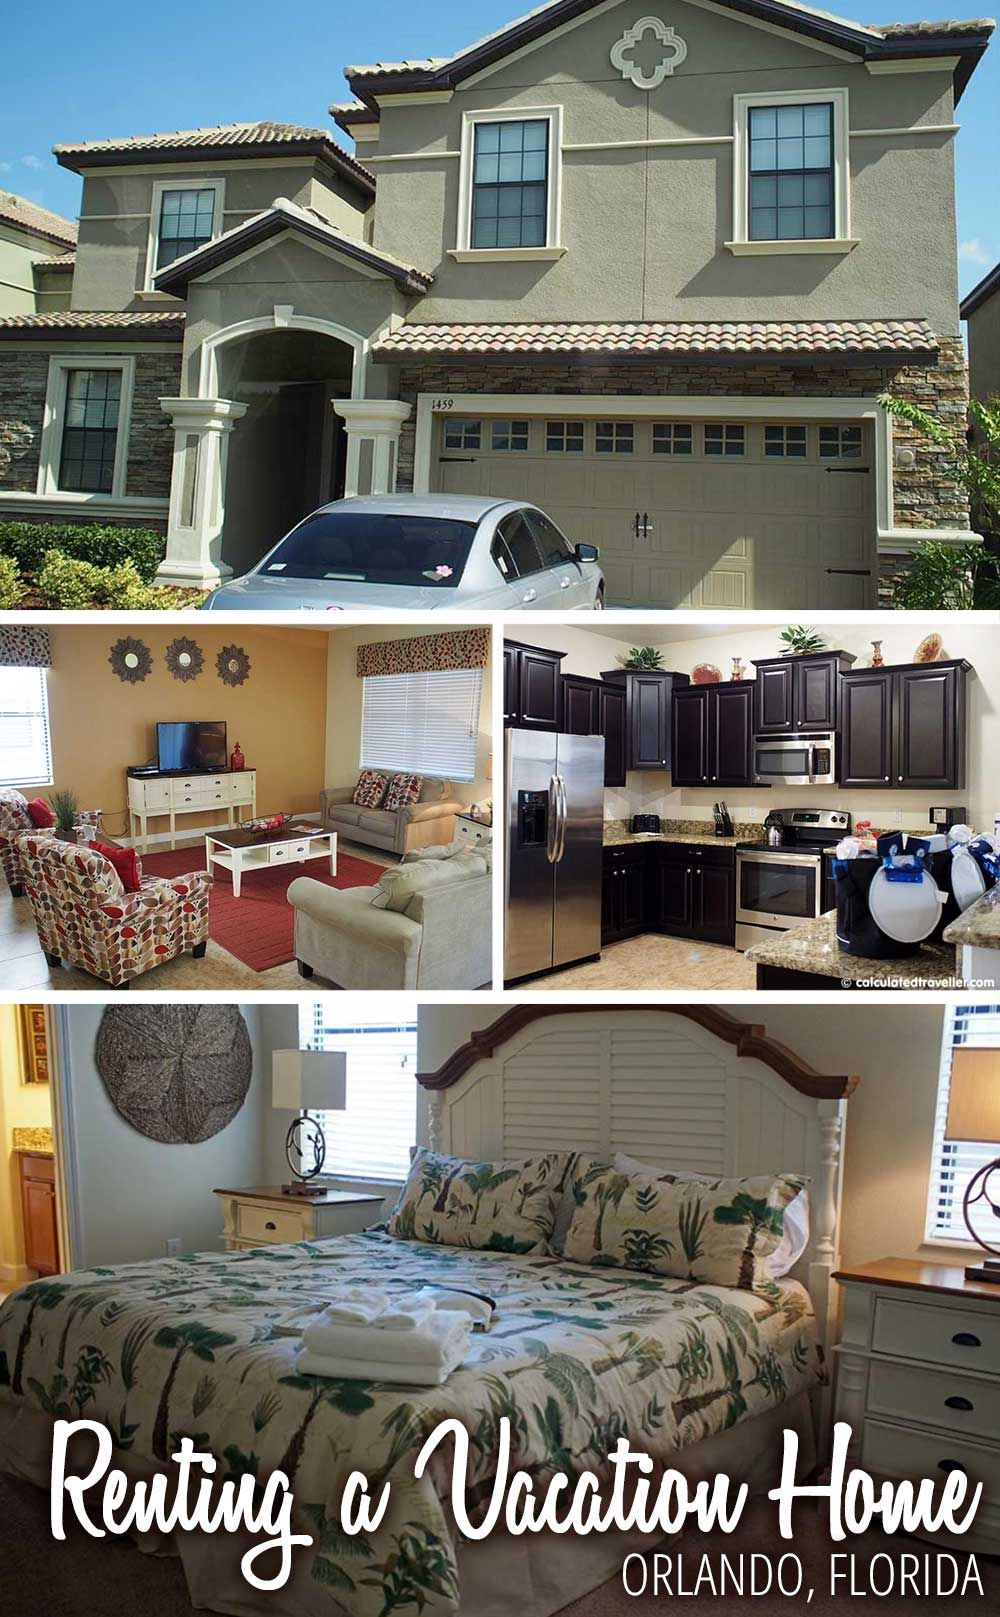 Renting A Vacation Home Global Resort Homes Orlando Fl Florida Family Vacation Orlando Florida Vacation Vacation Home